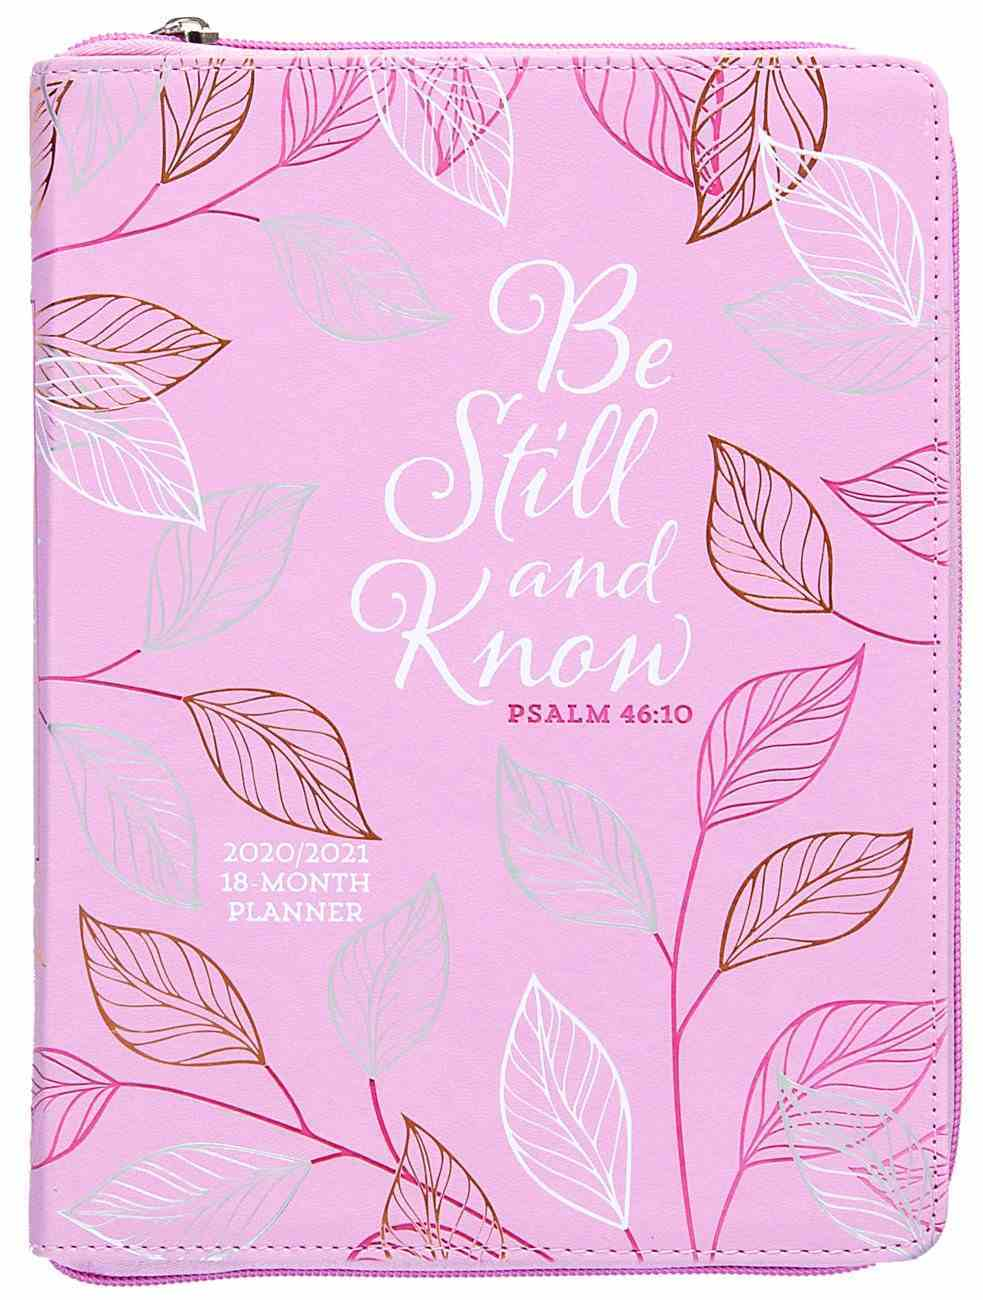 2021 18-Month Weekly Diary/Planner: Be Still and Know (Faux Ziparound) Imitation Leather